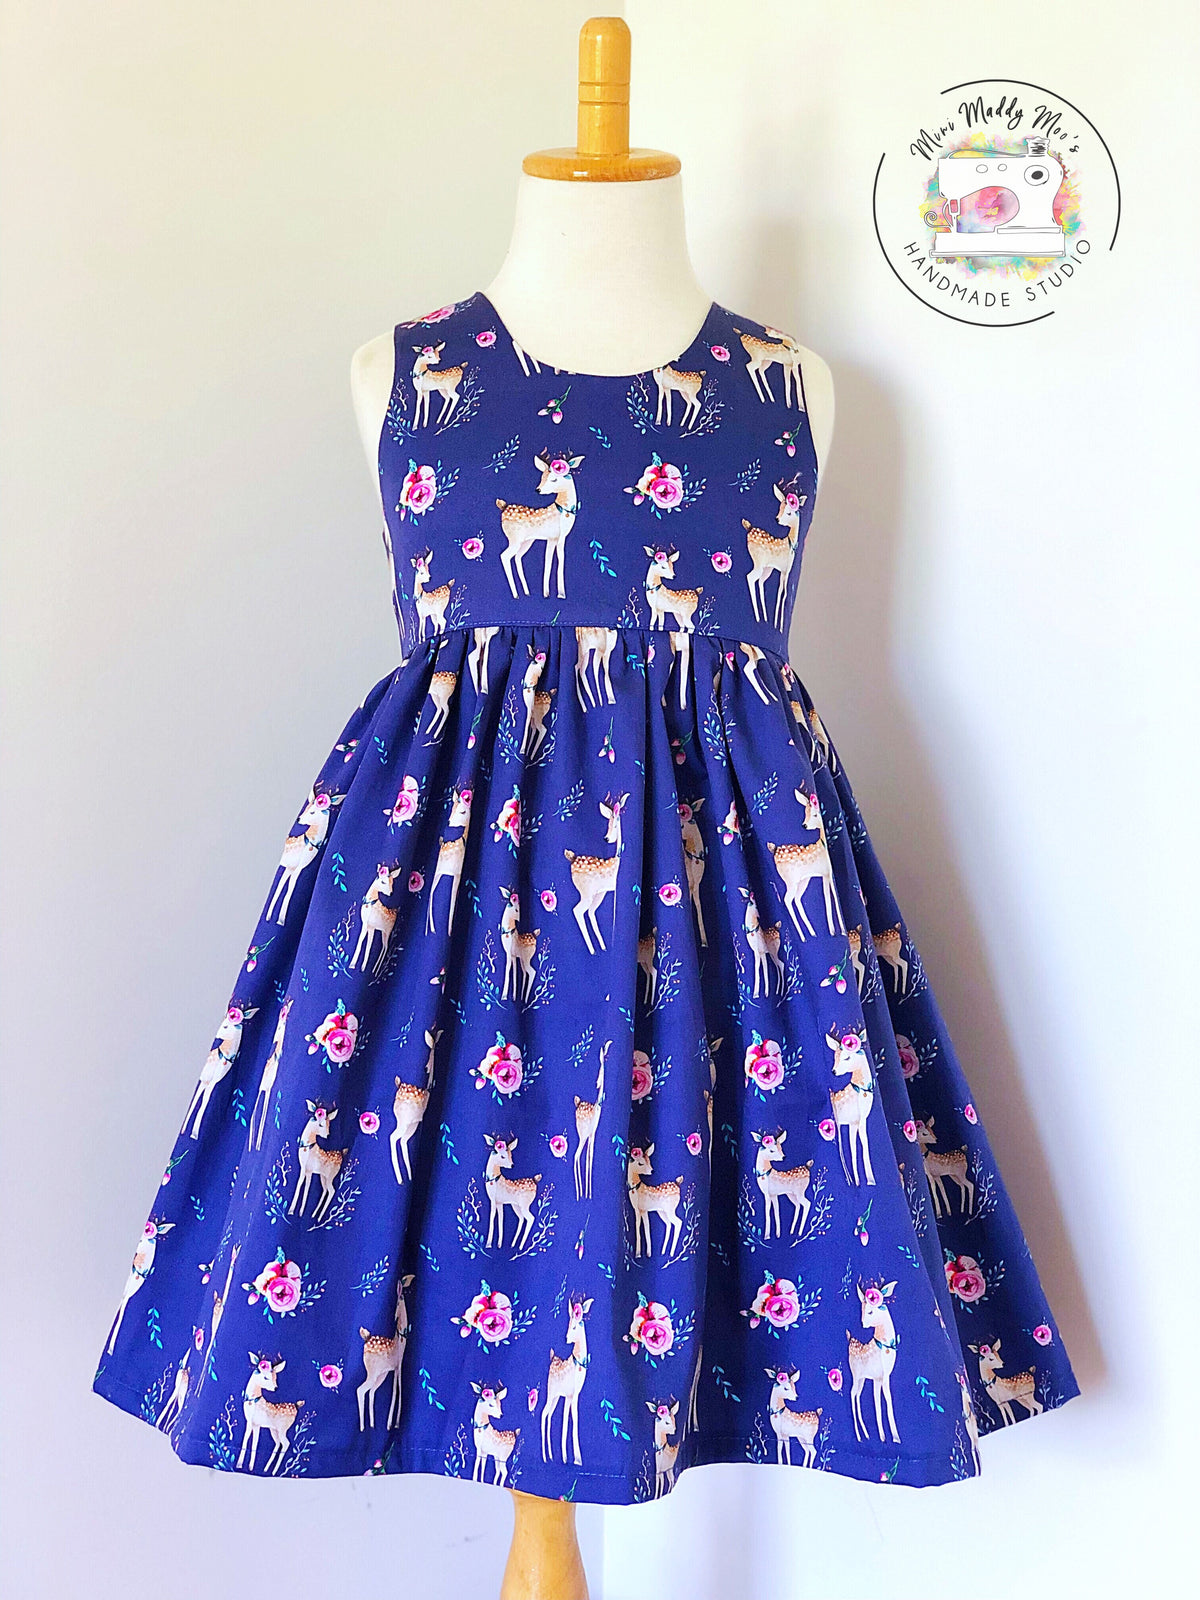 Custom Easter Tea Party Dress - Mini Maddy Moo's